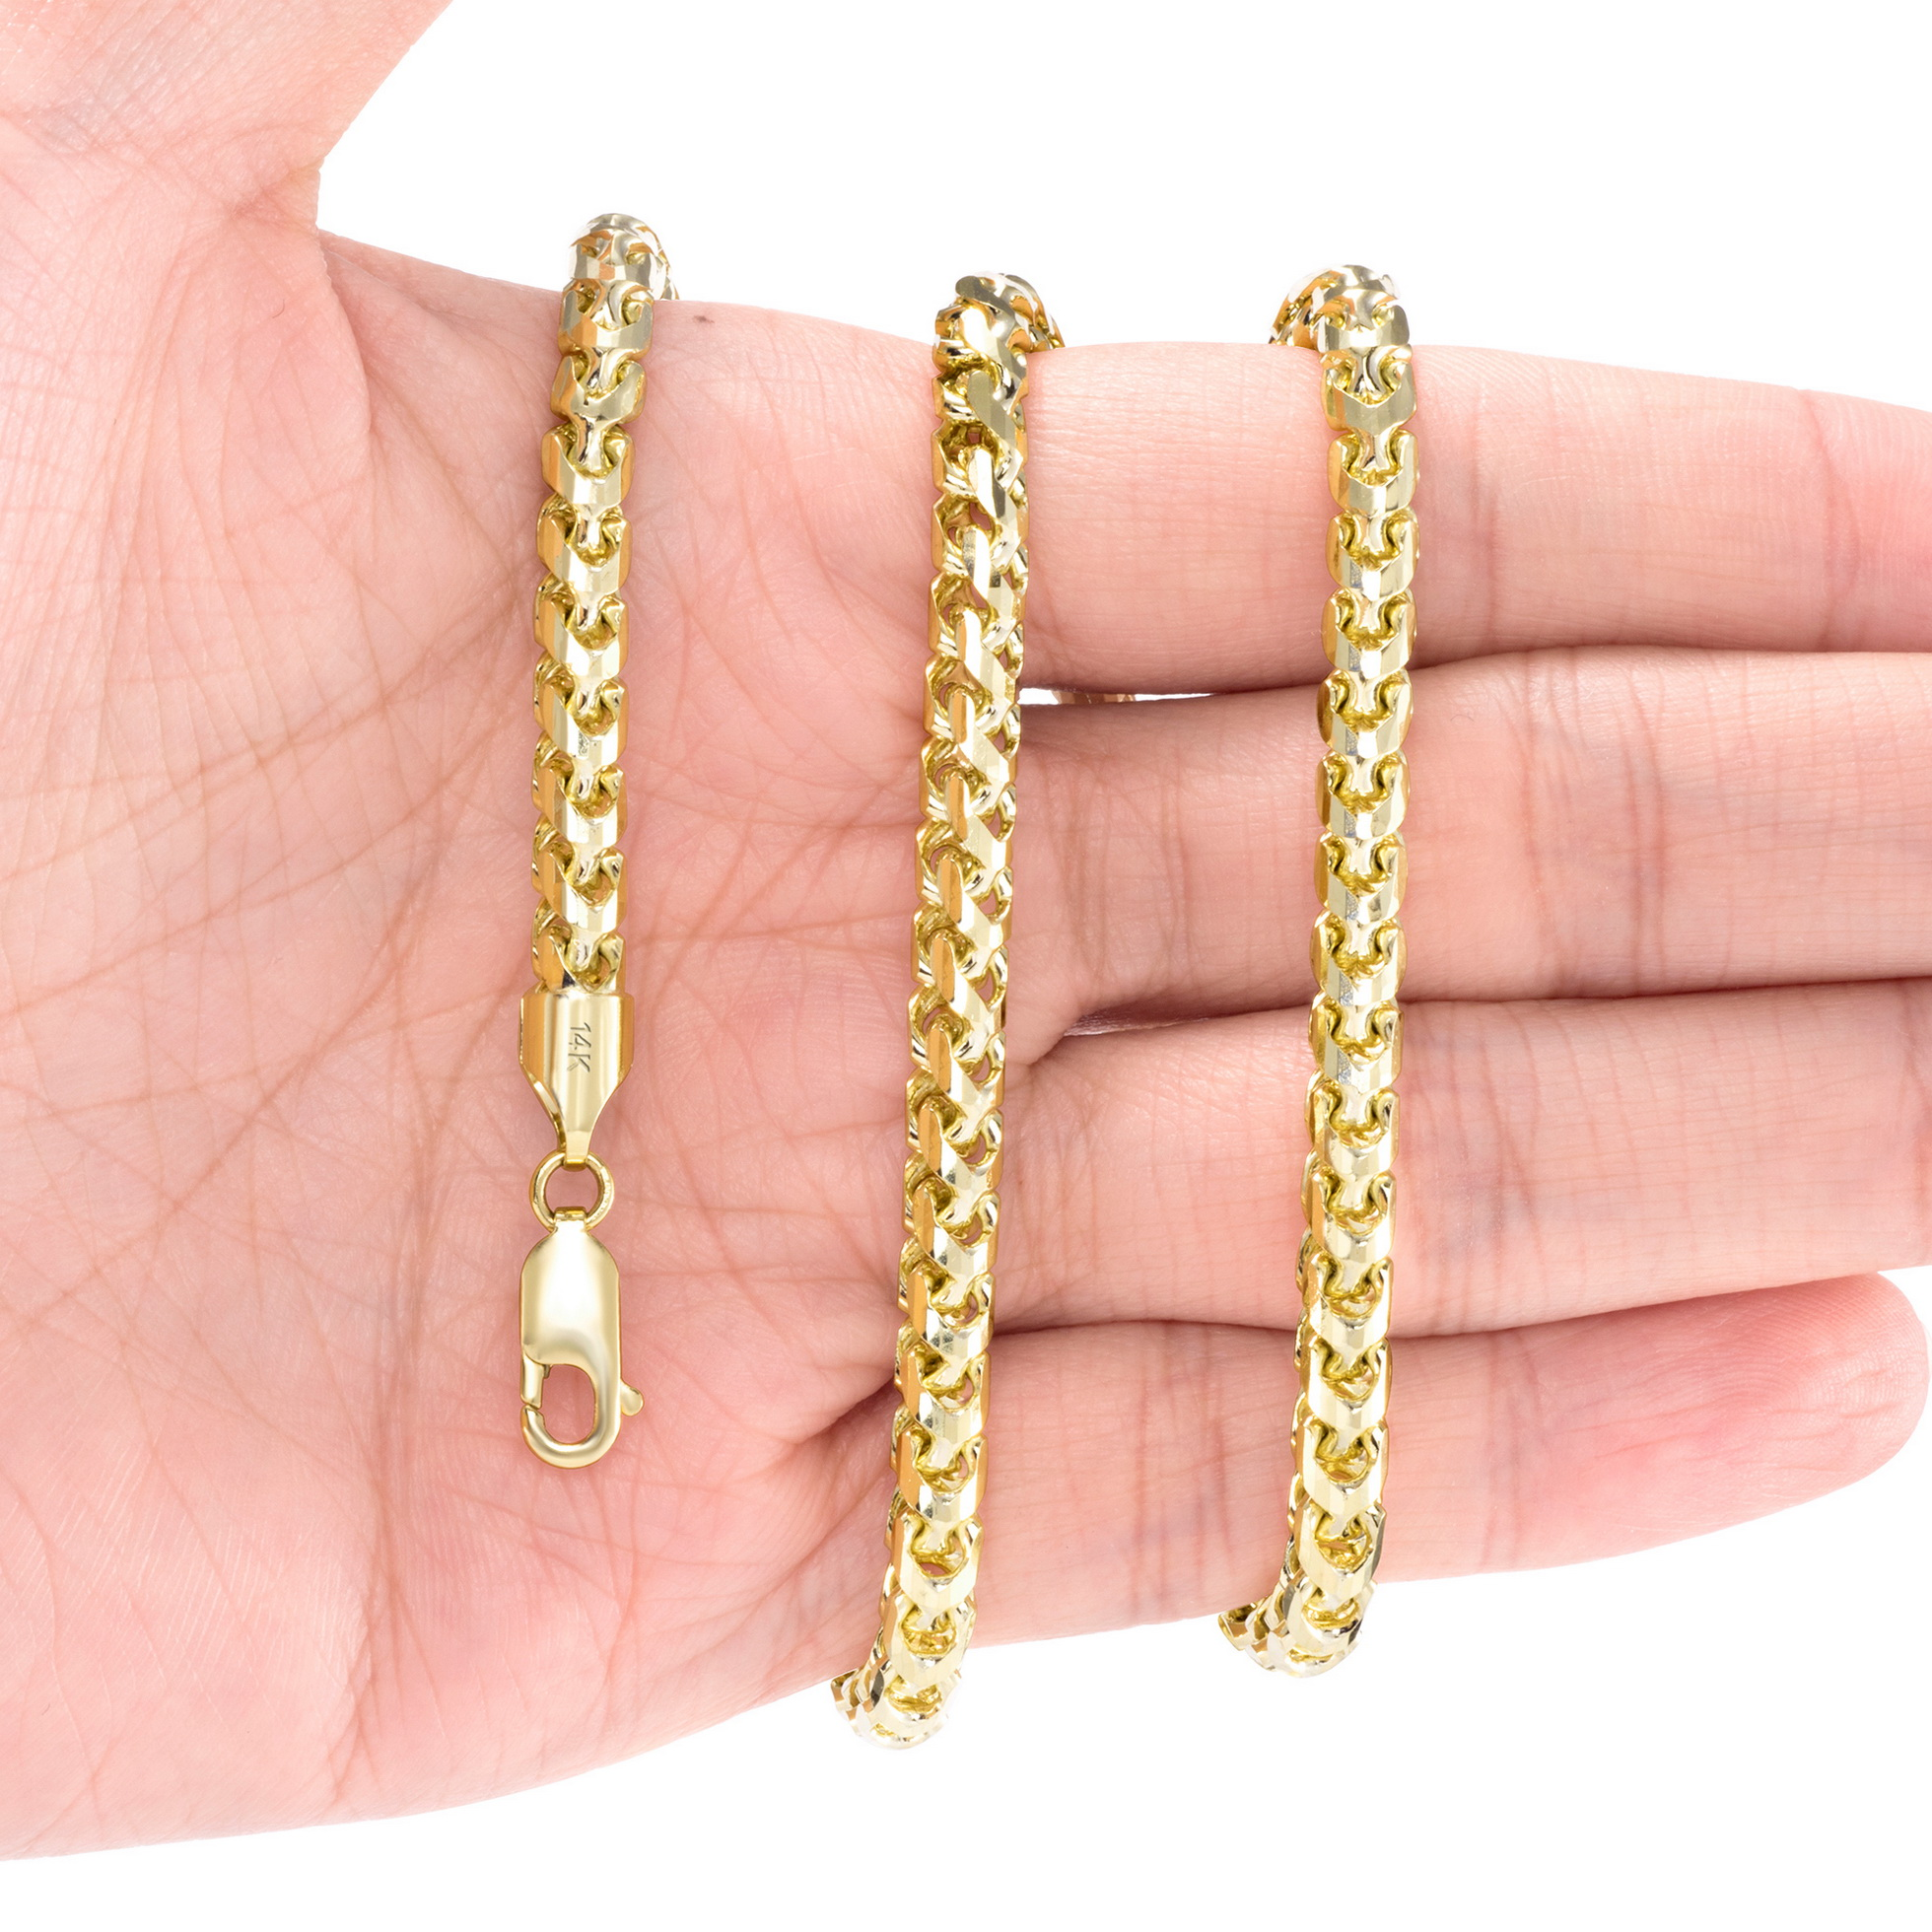 14K-Yellow-Gold-Solid-0-9mm-6mm-Round-Box-Franco-Chain-Pendant-Necklace-16-034-30-034 thumbnail 27